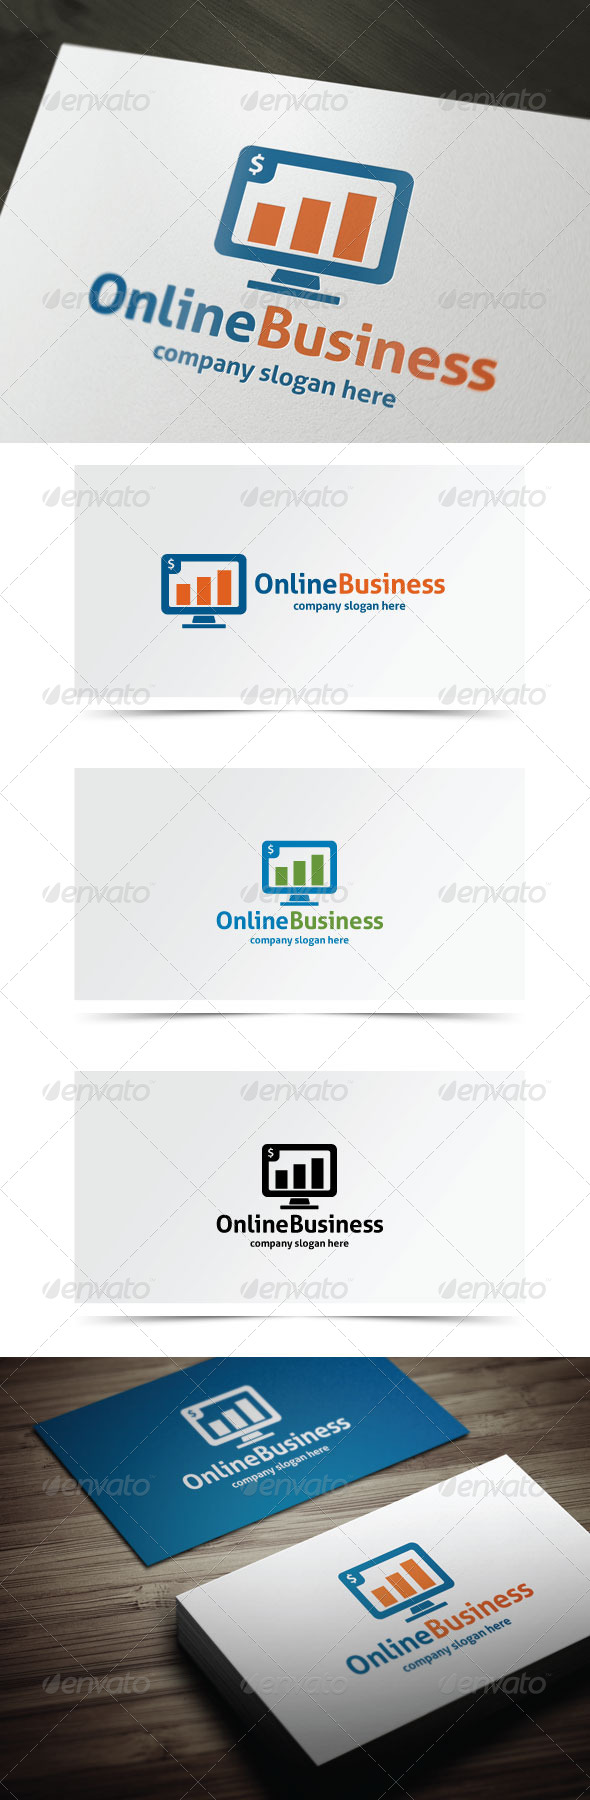 GraphicRiver Online Business 6397659